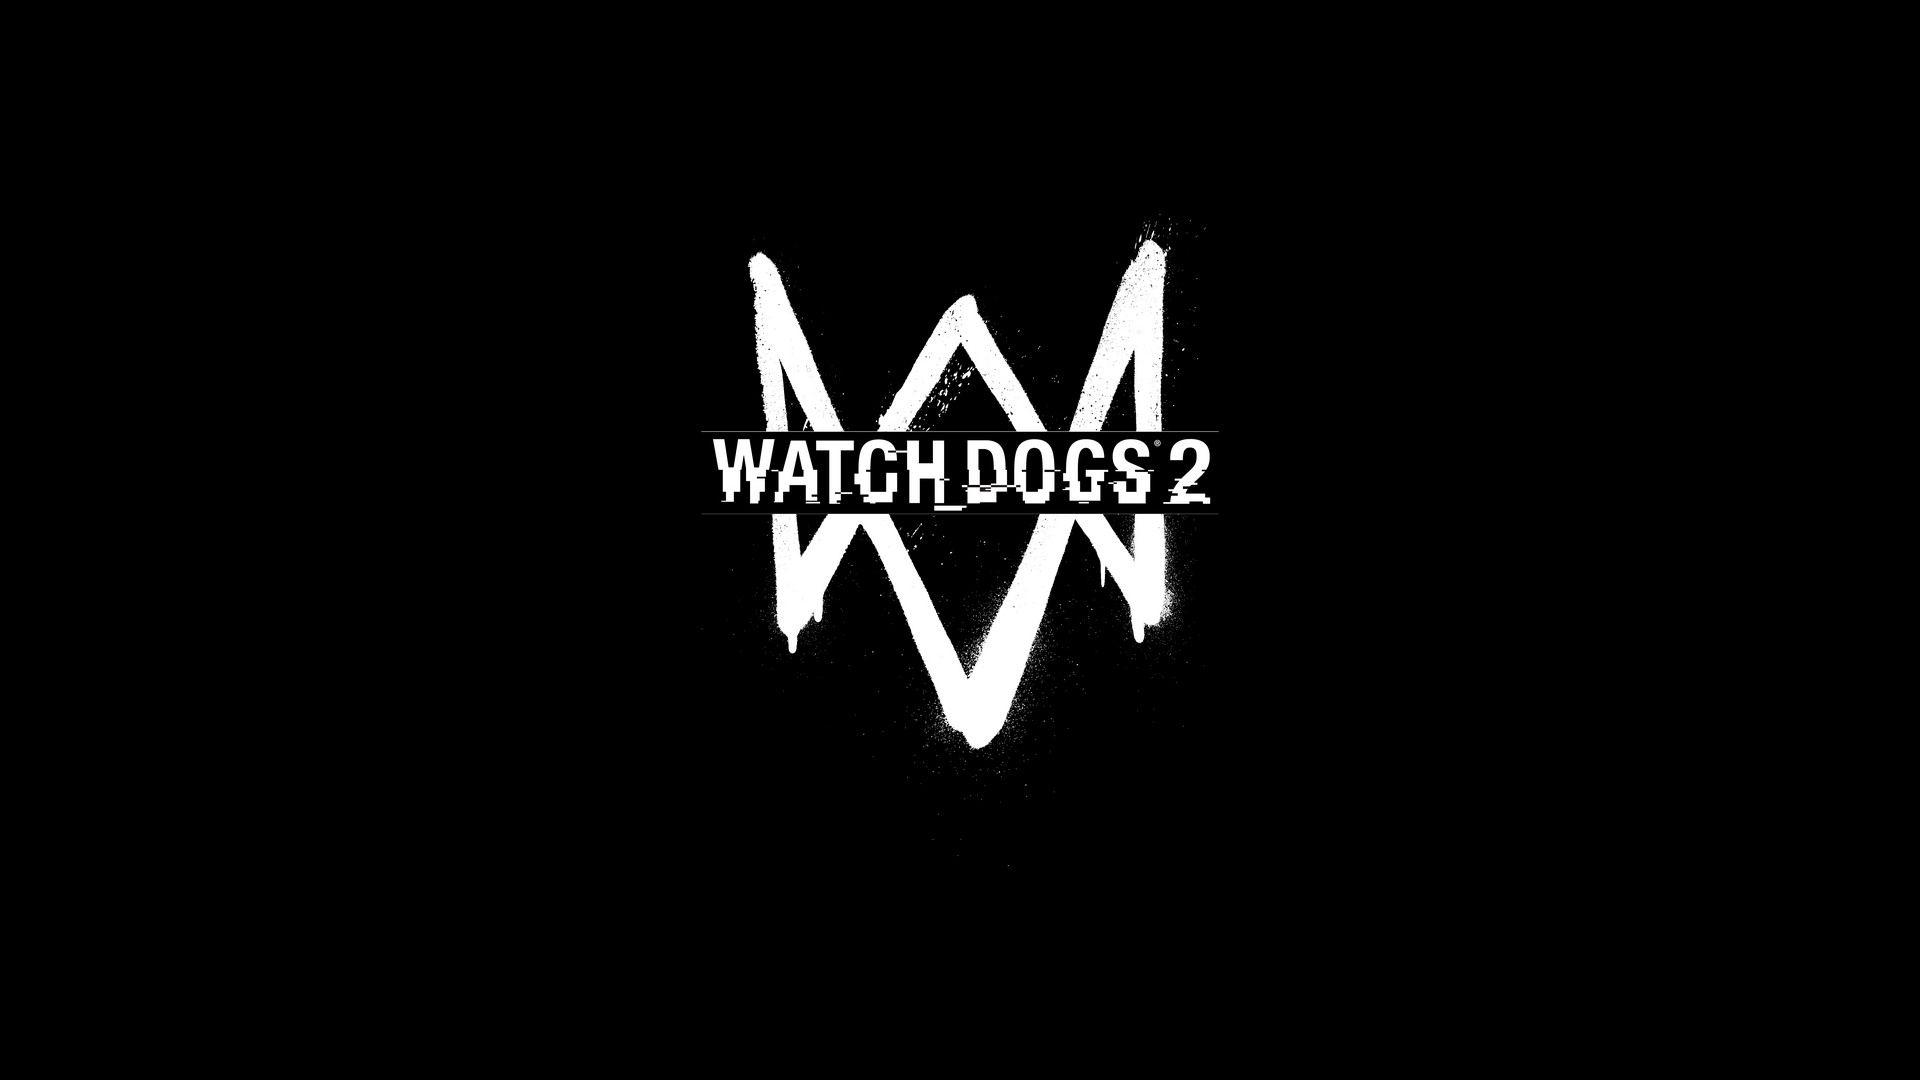 Watch Dogs 2 Game Wallpapers Wallpaper Cave